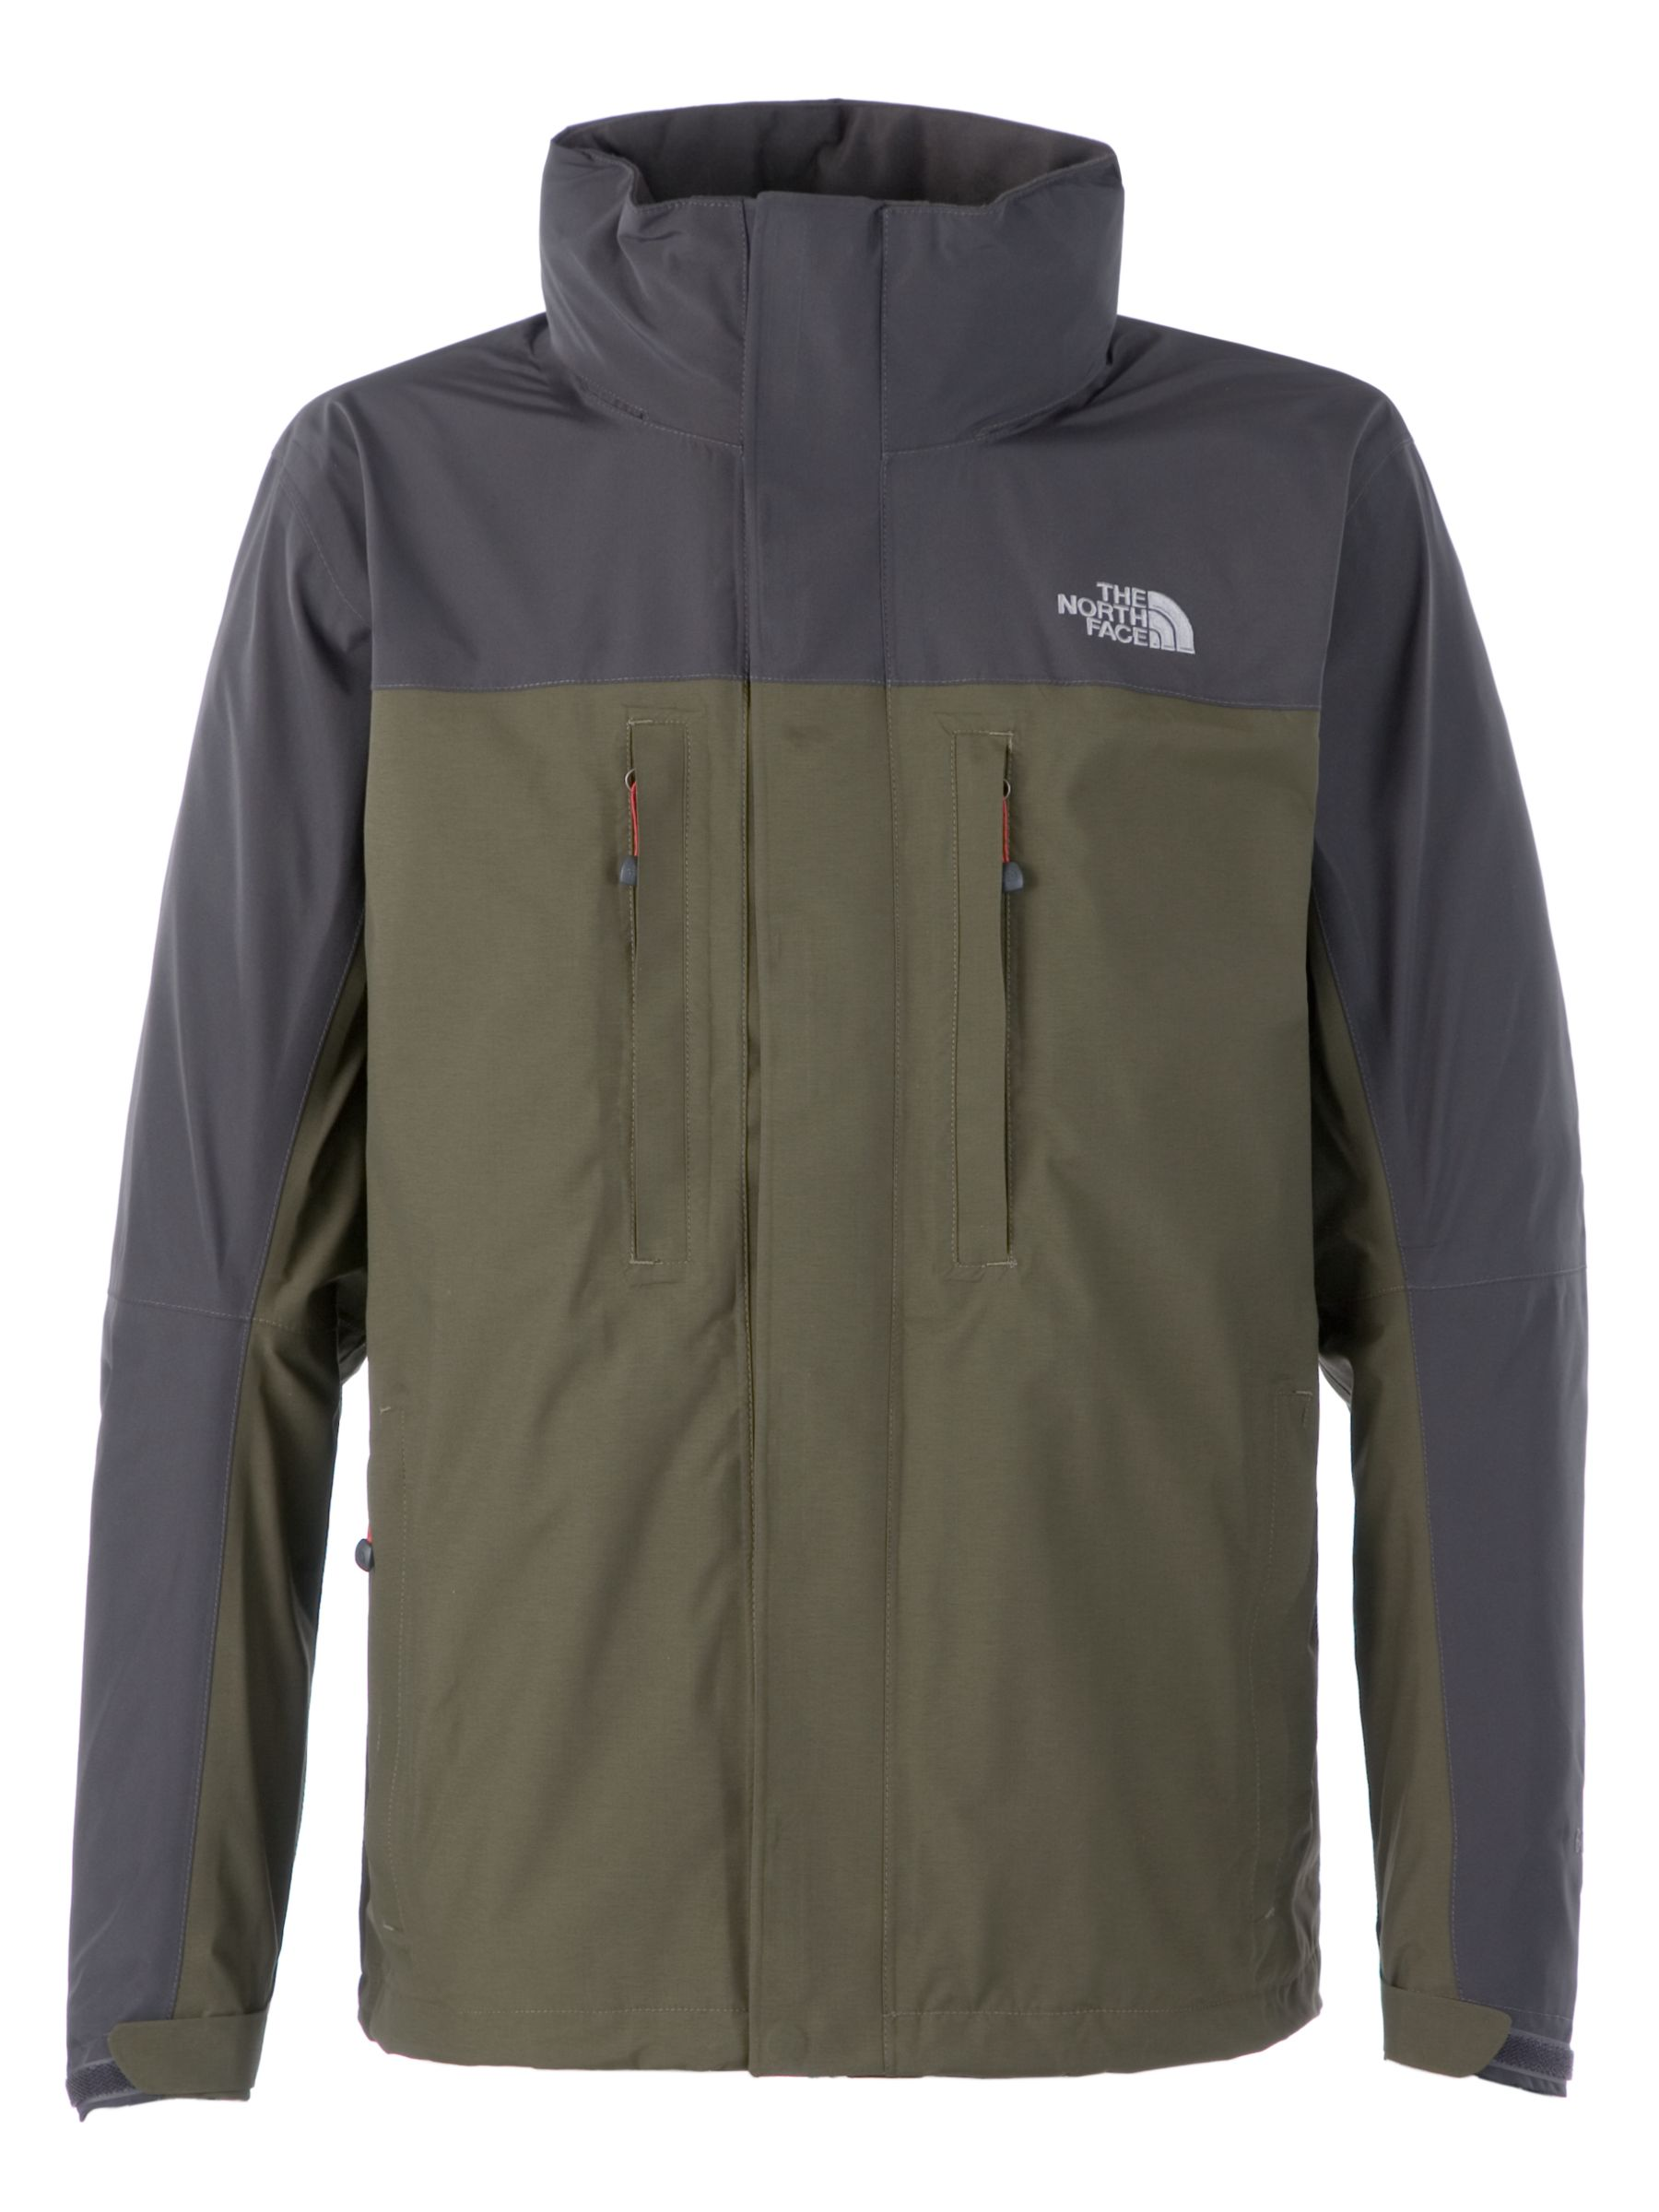 The North Face Downpour Waterproof Jacket, Green/Grey at John Lewis